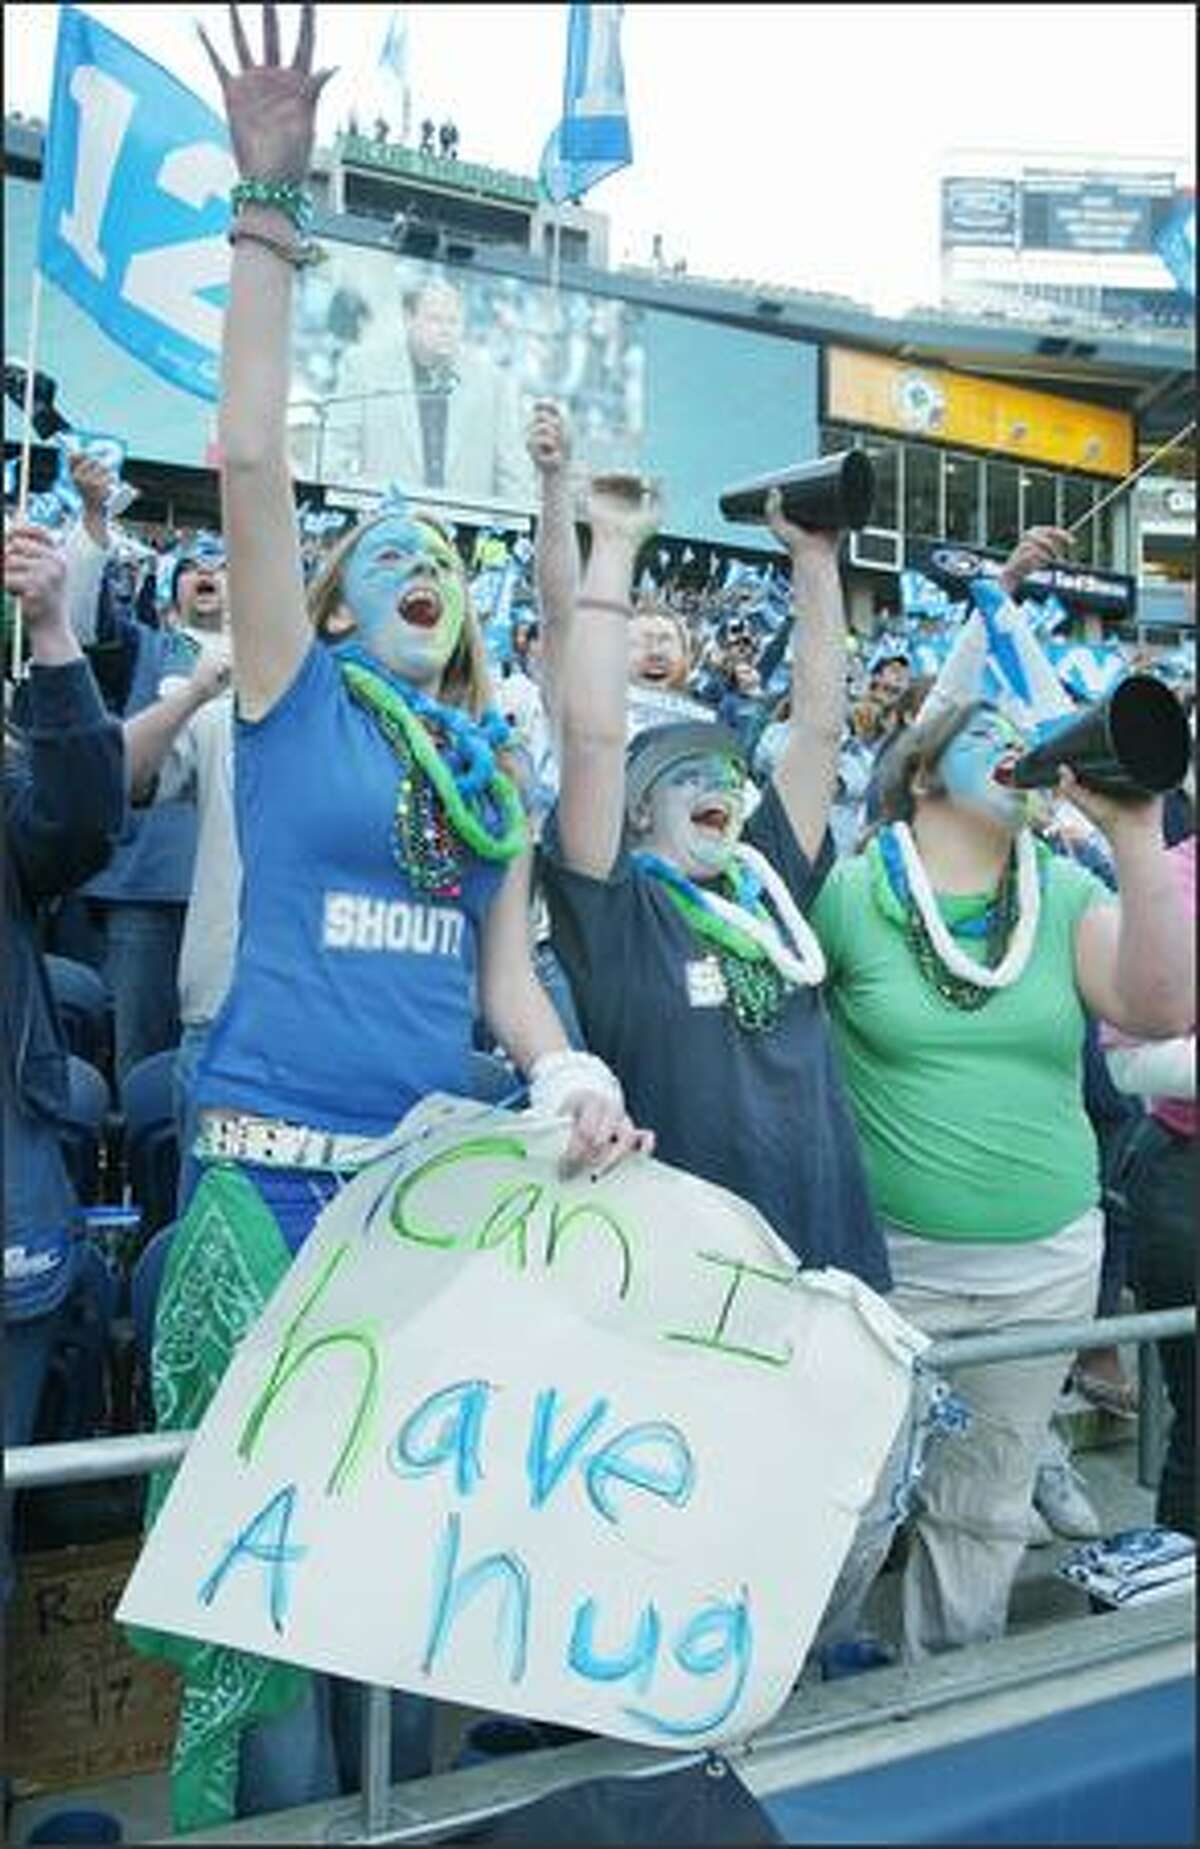 Left to right, Mickey Horgan, Malissa Dunn, and Gena Copley, all from Graham, Wash., attended the rally for the Seahawks return to Qwest Field.